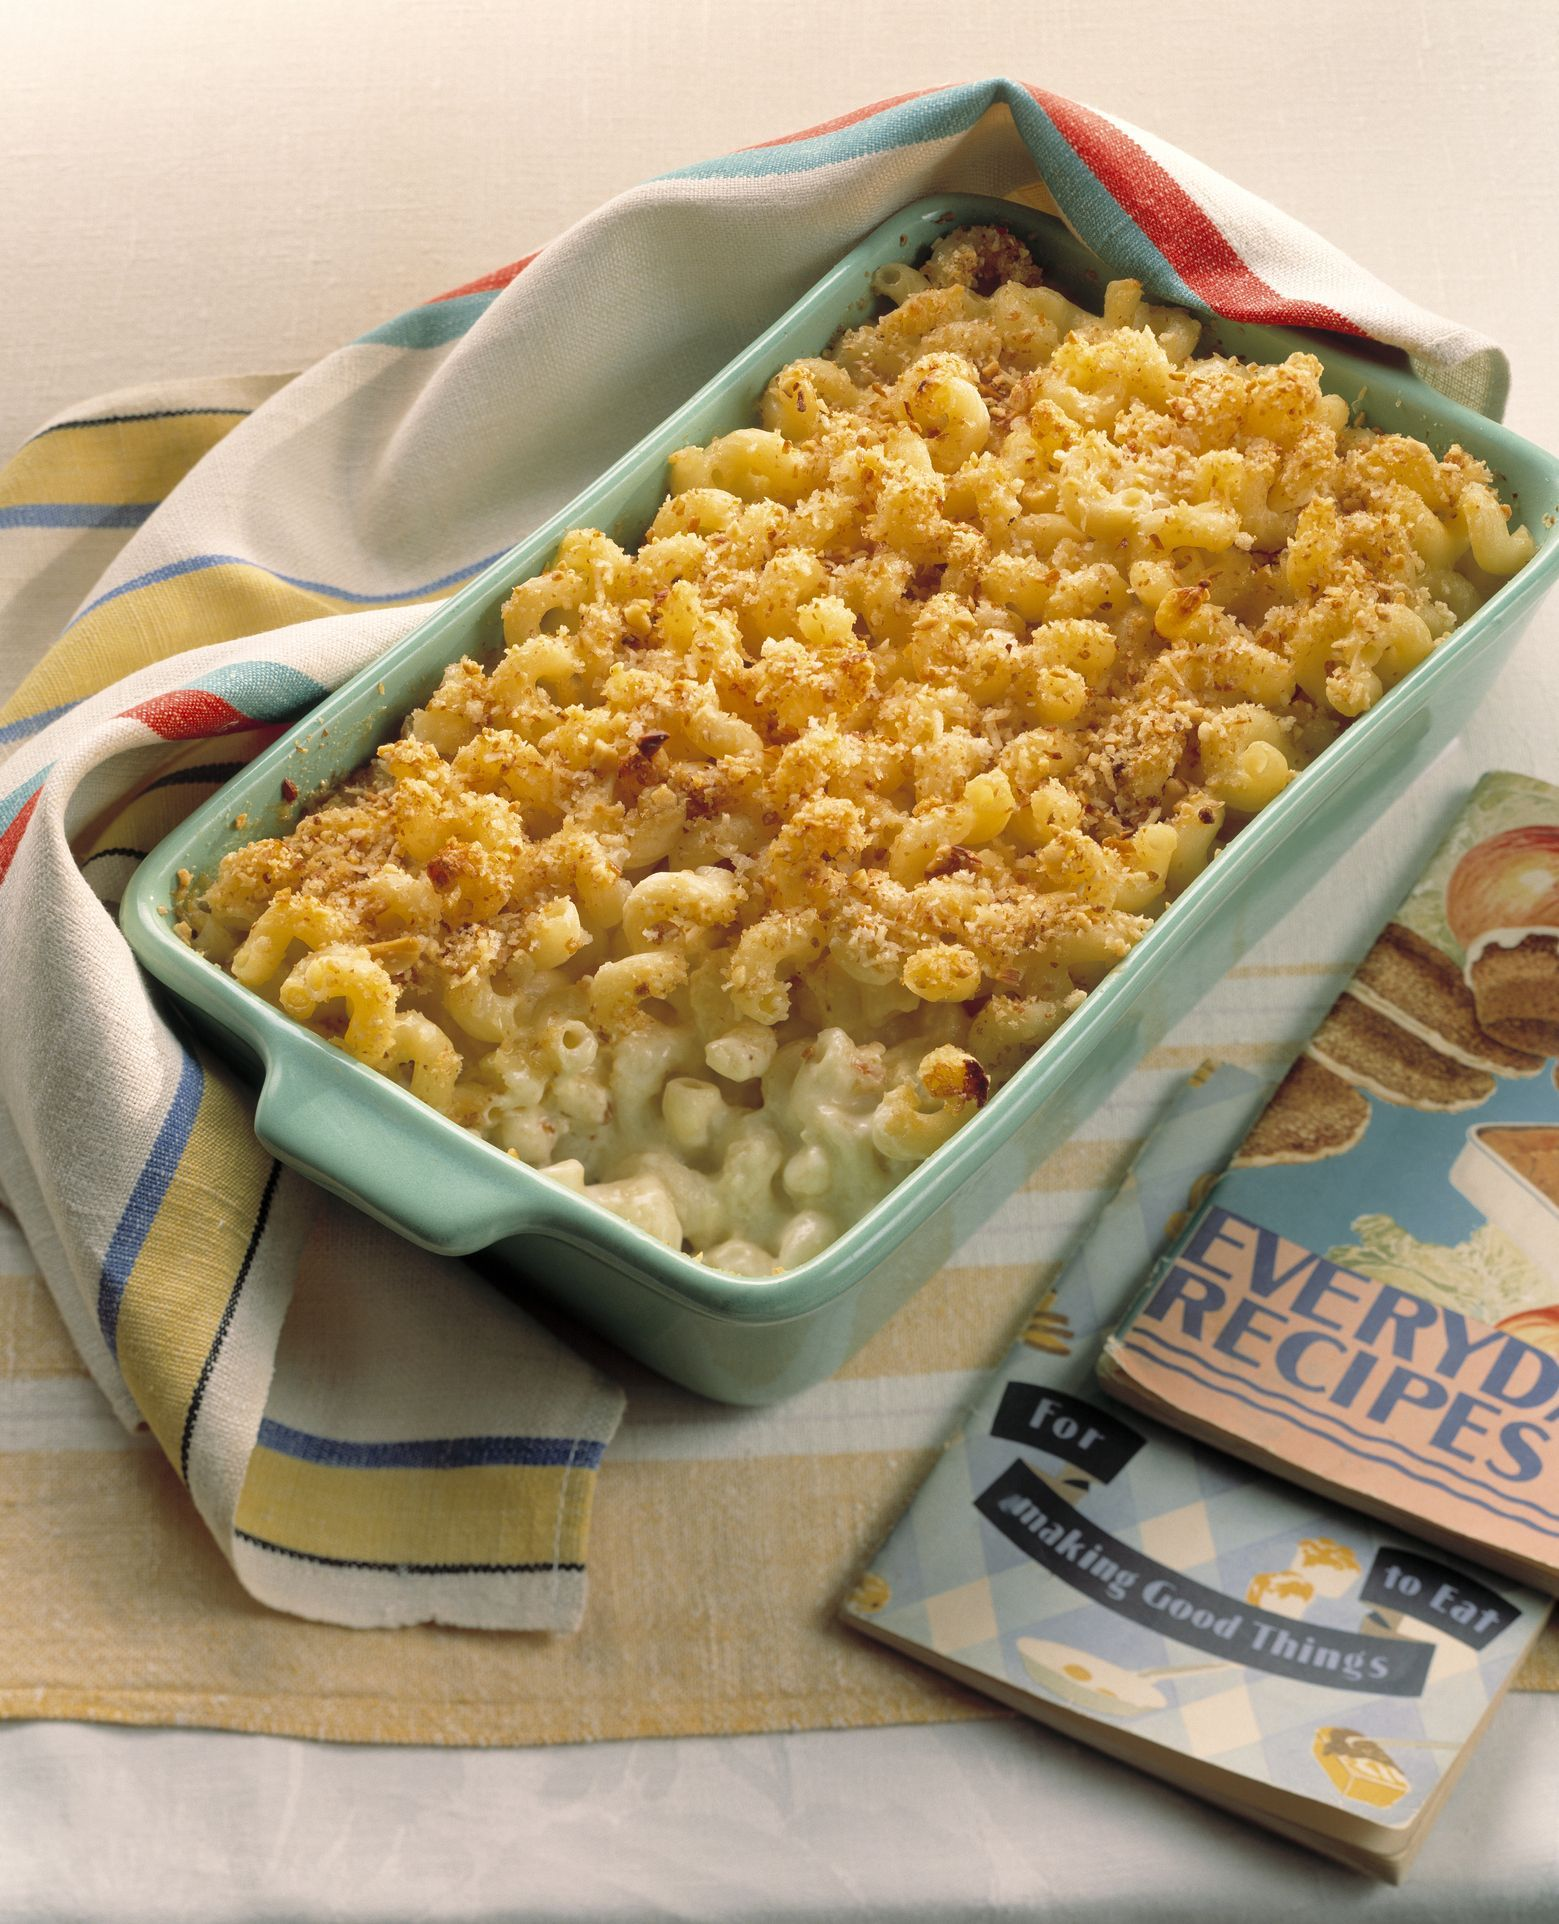 Baked Macaroni With Three Cheeses Recipe Food Recipes Cottage Cheese Recipes Casserole Recipes